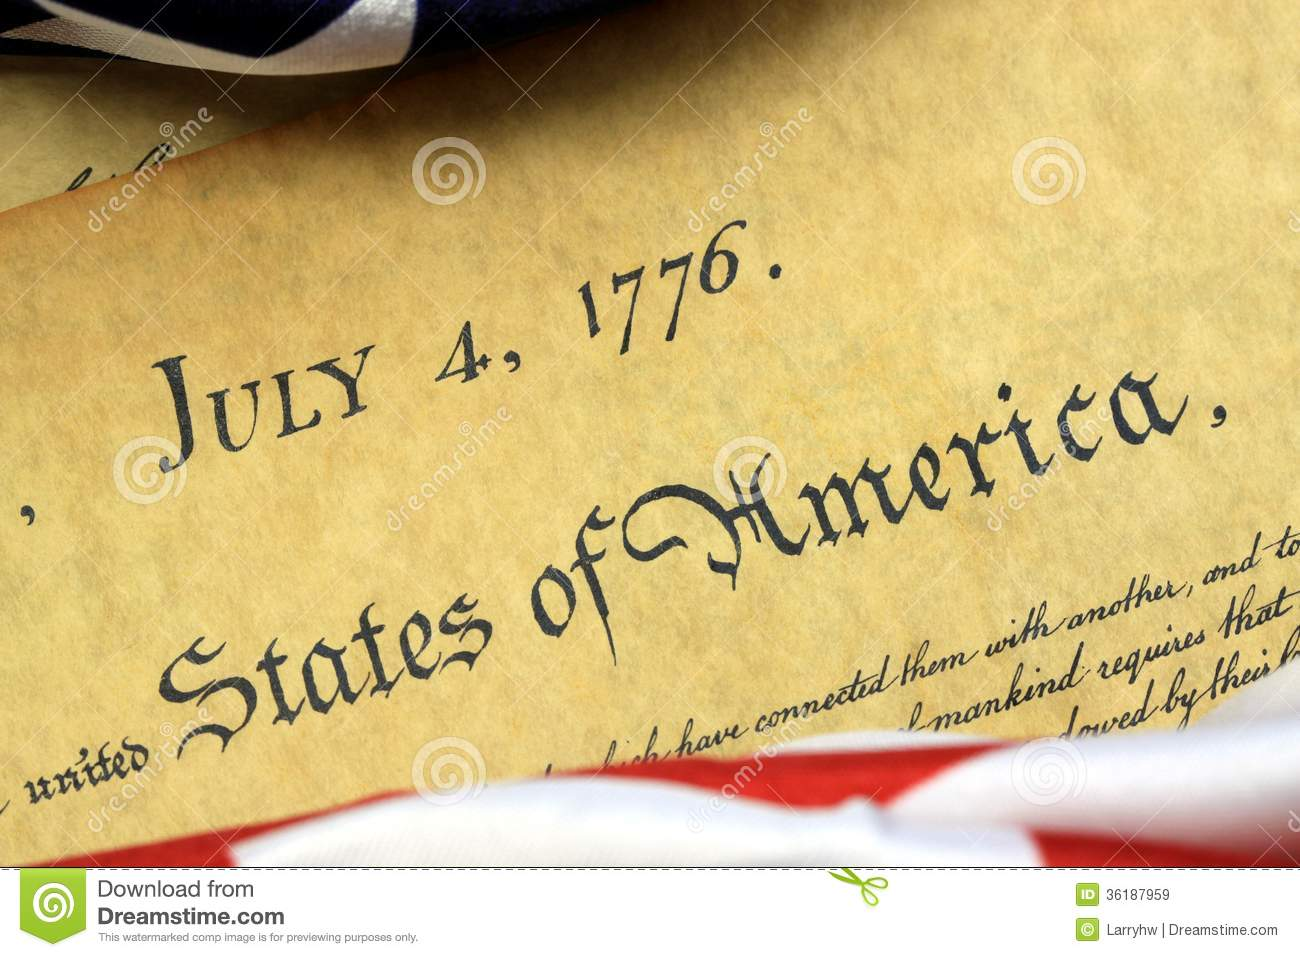 July 4th, 1776 - United States Bill Of Rights Stock Image - Image of